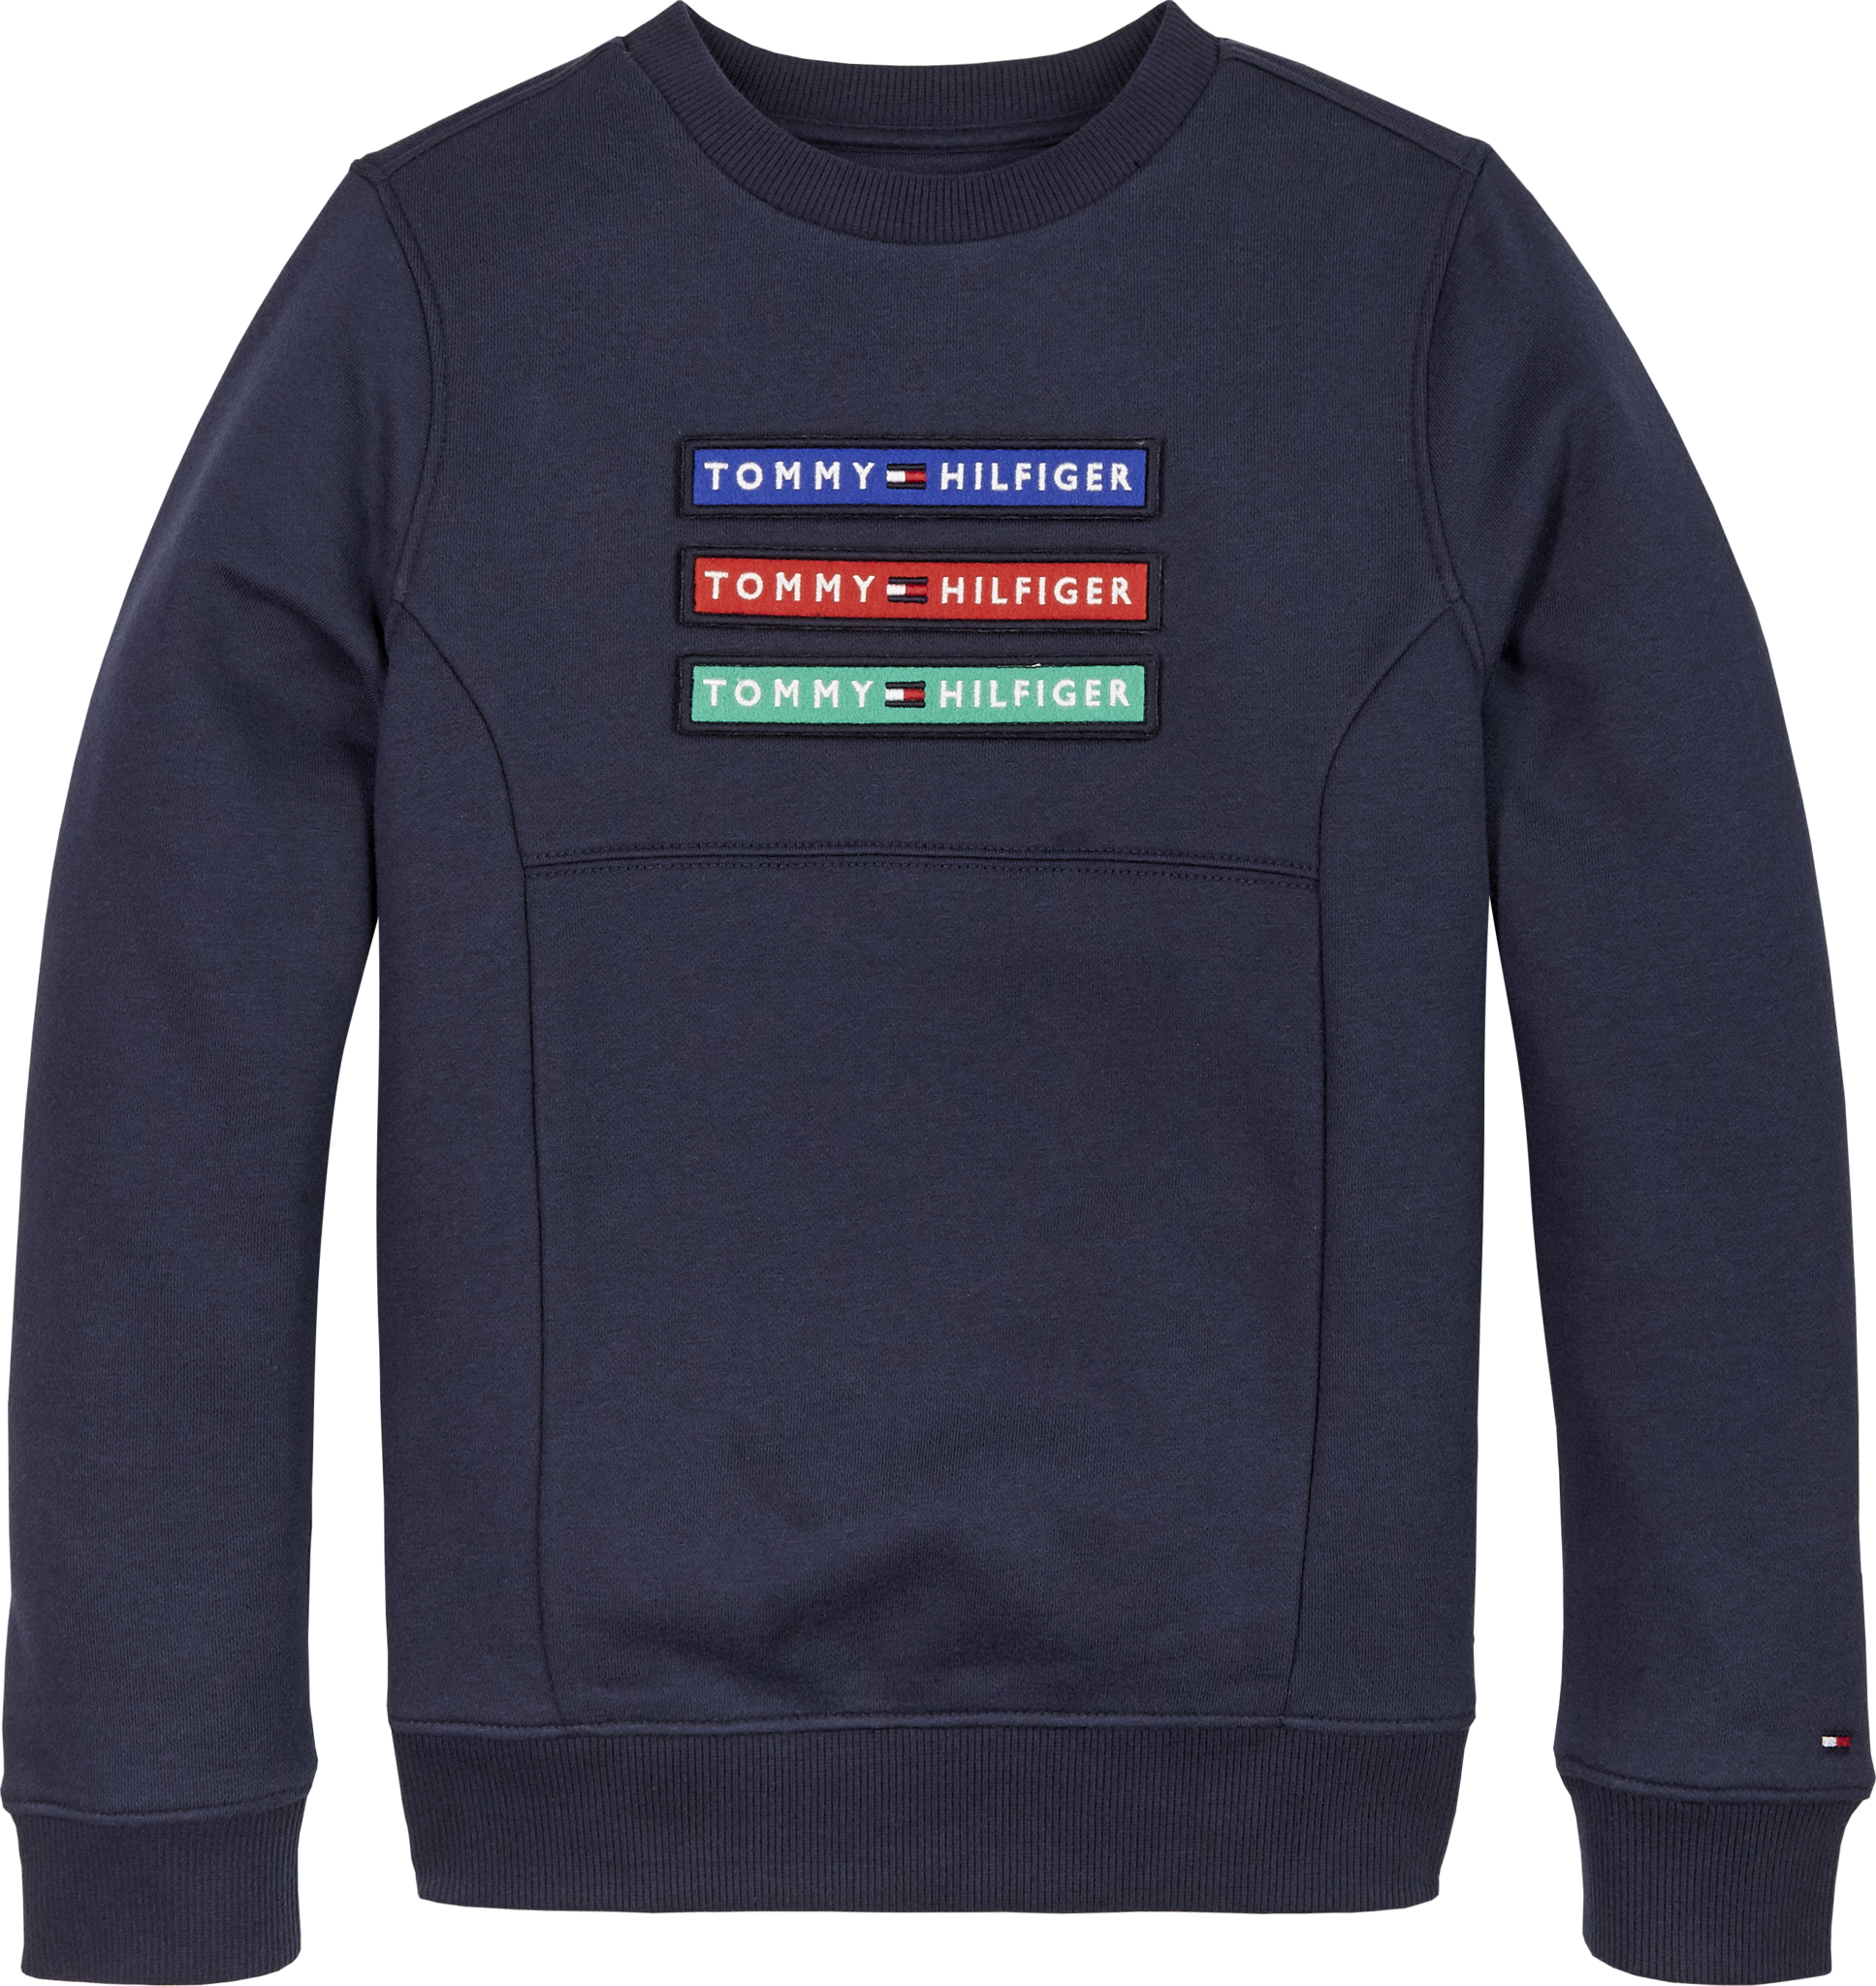 Tommy Hilfiger Badge Velcro Sweater